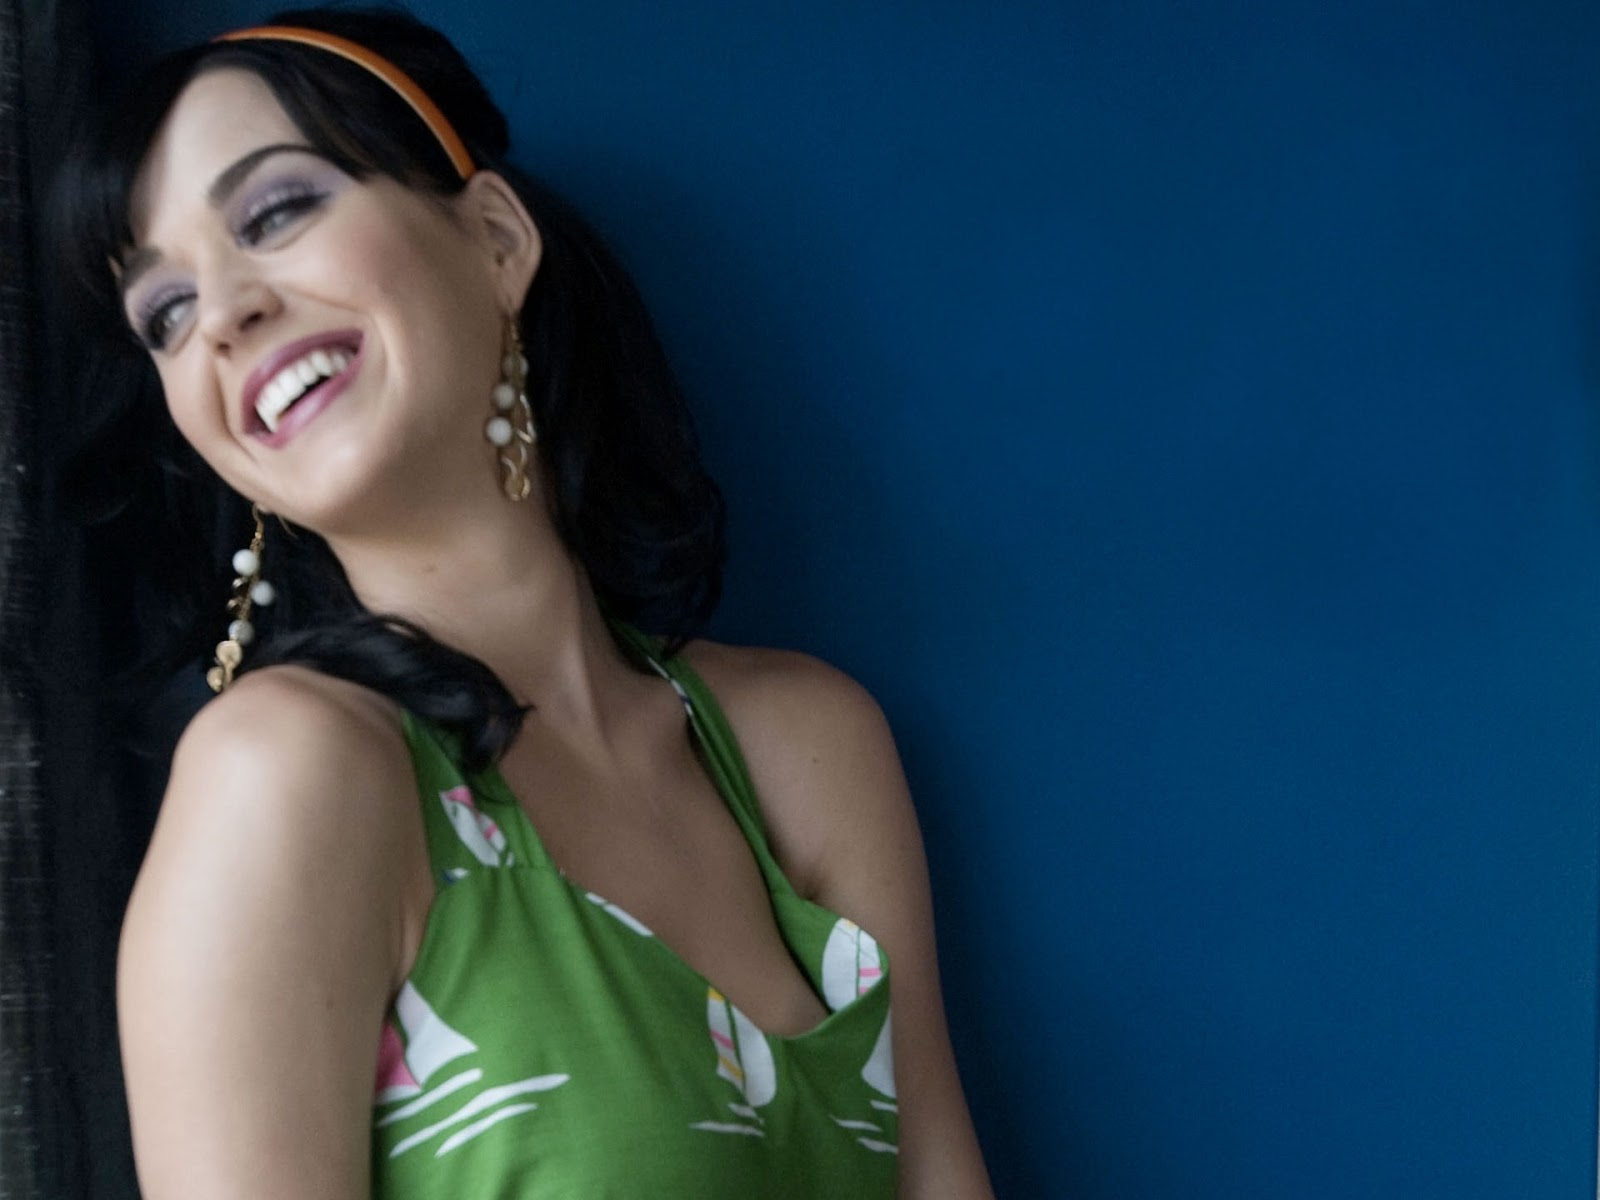 Forum on this topic: Laura carter topless, katy-perry-smiling-nude-pic/